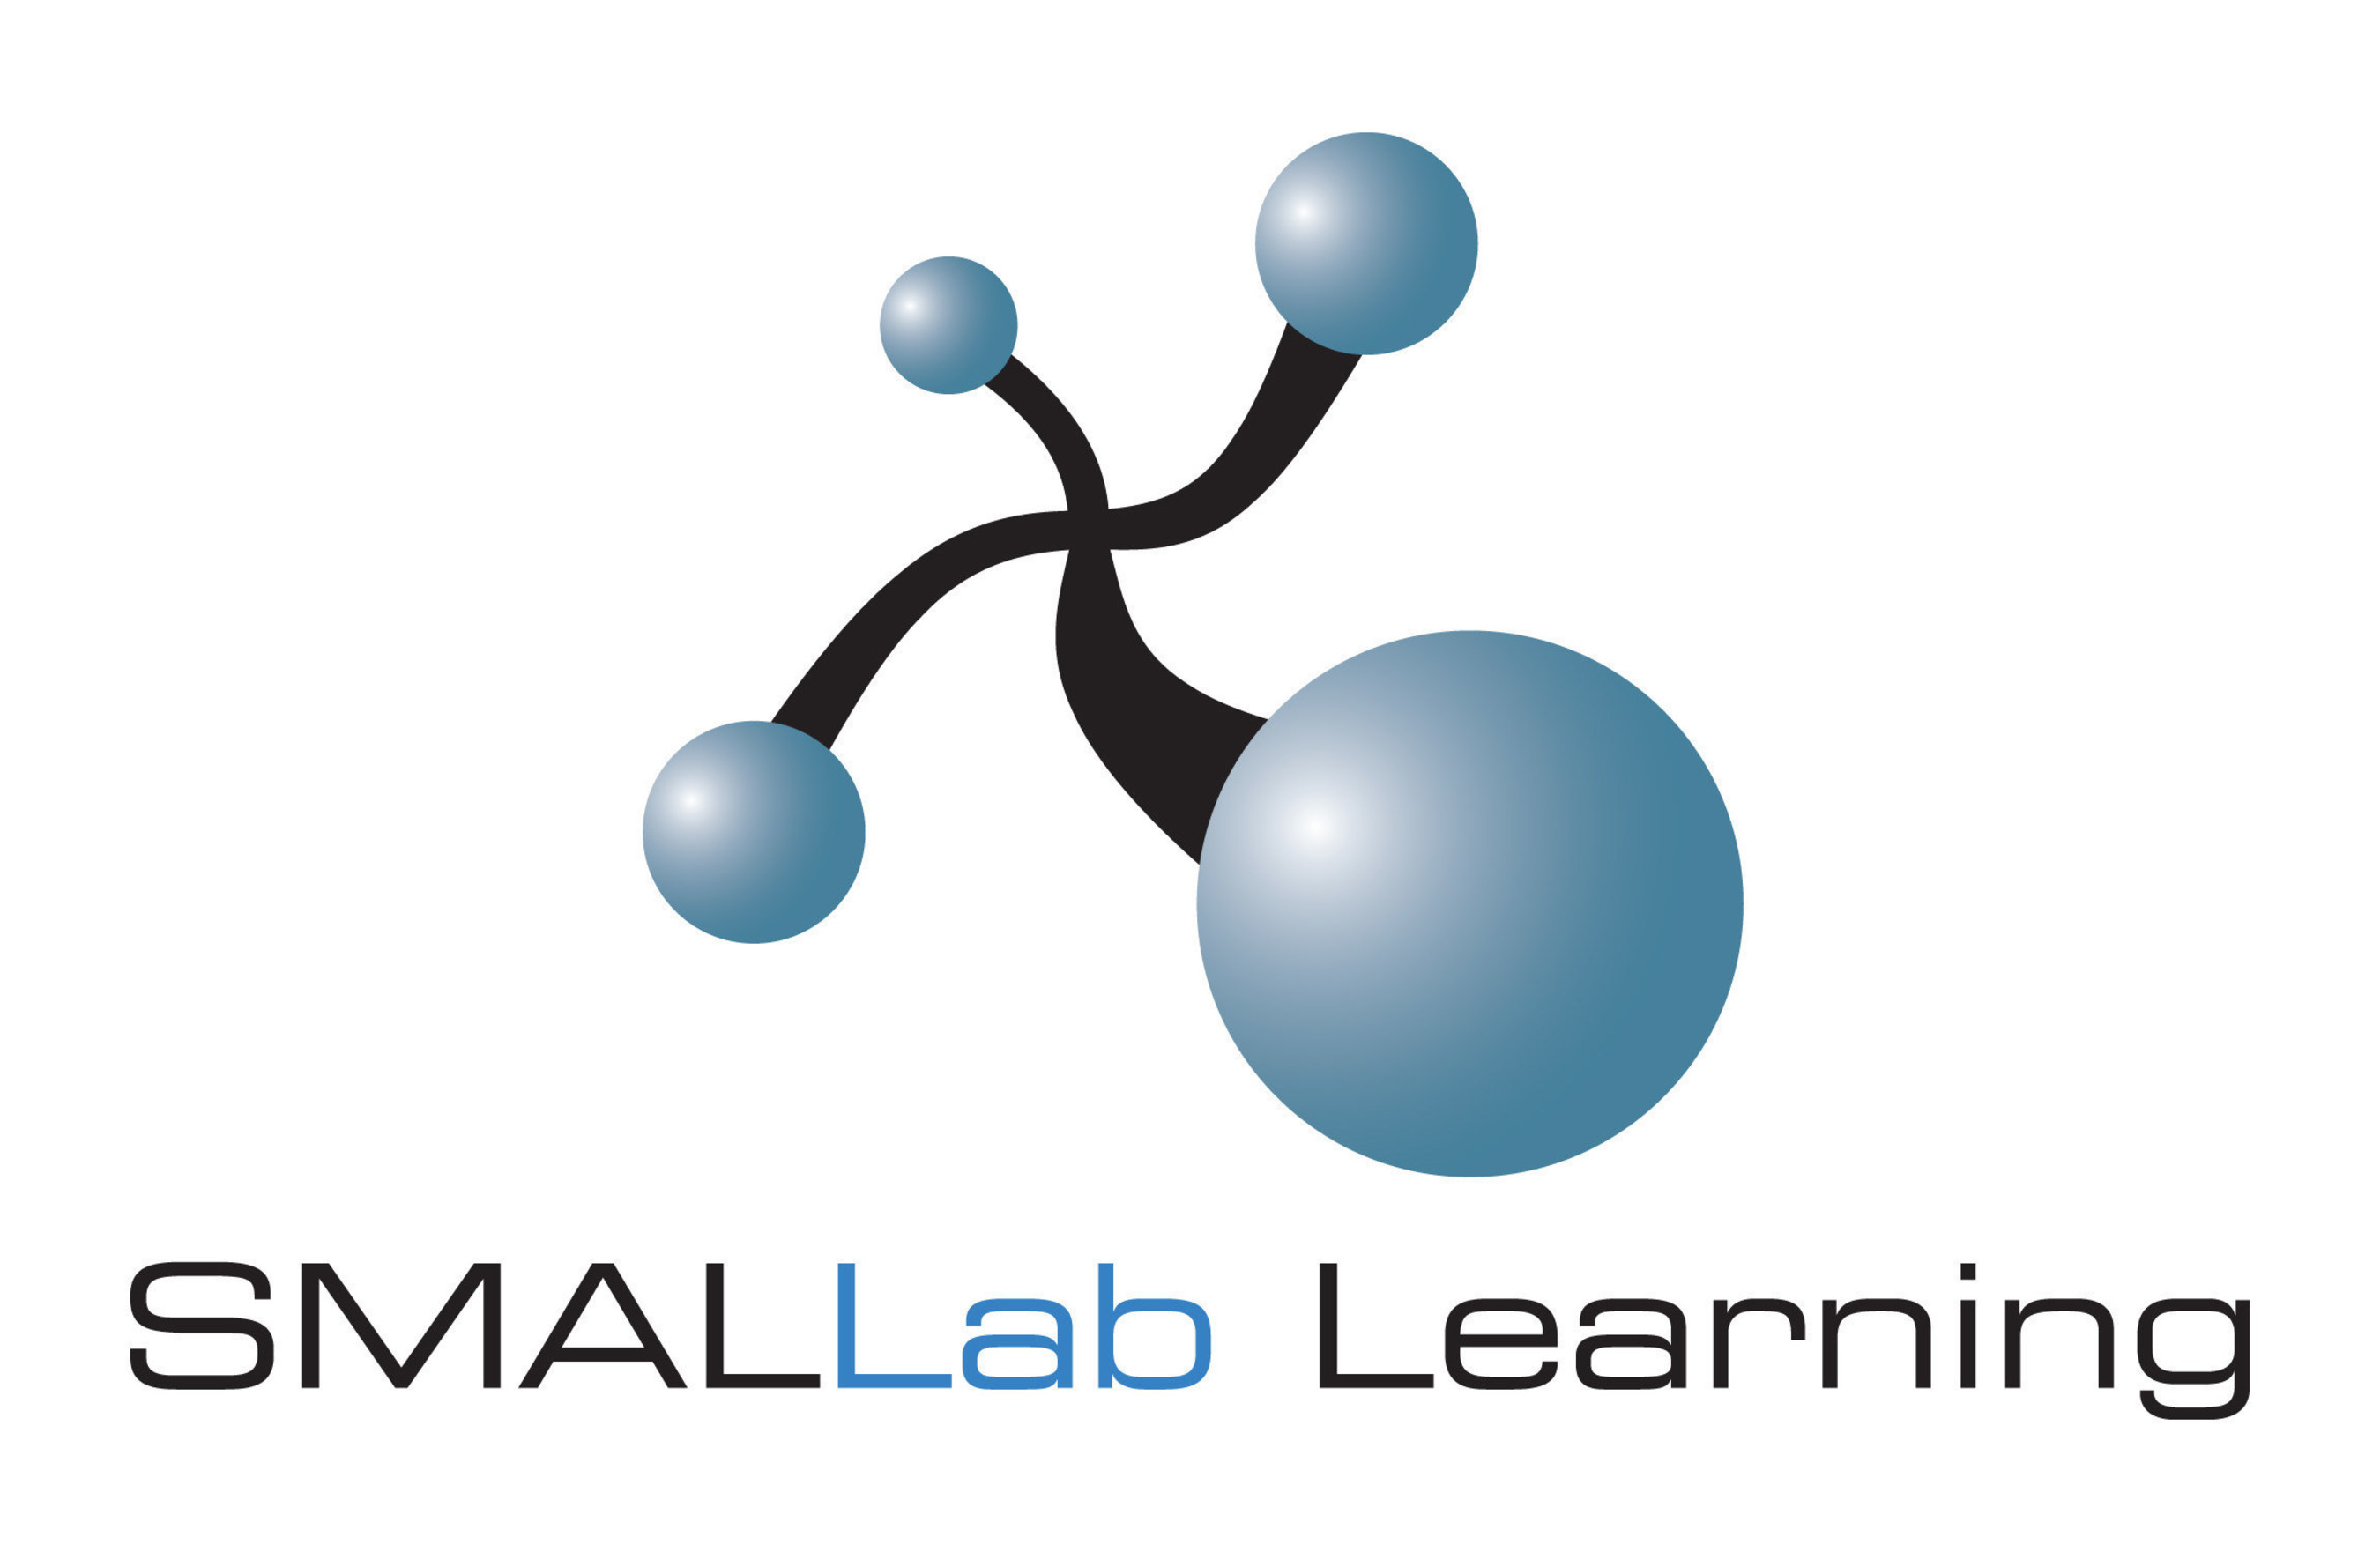 SMALLab Learning Expands Embodied Learning Environment Beyond Traditional Classroom and Offers New Purchasing Programs